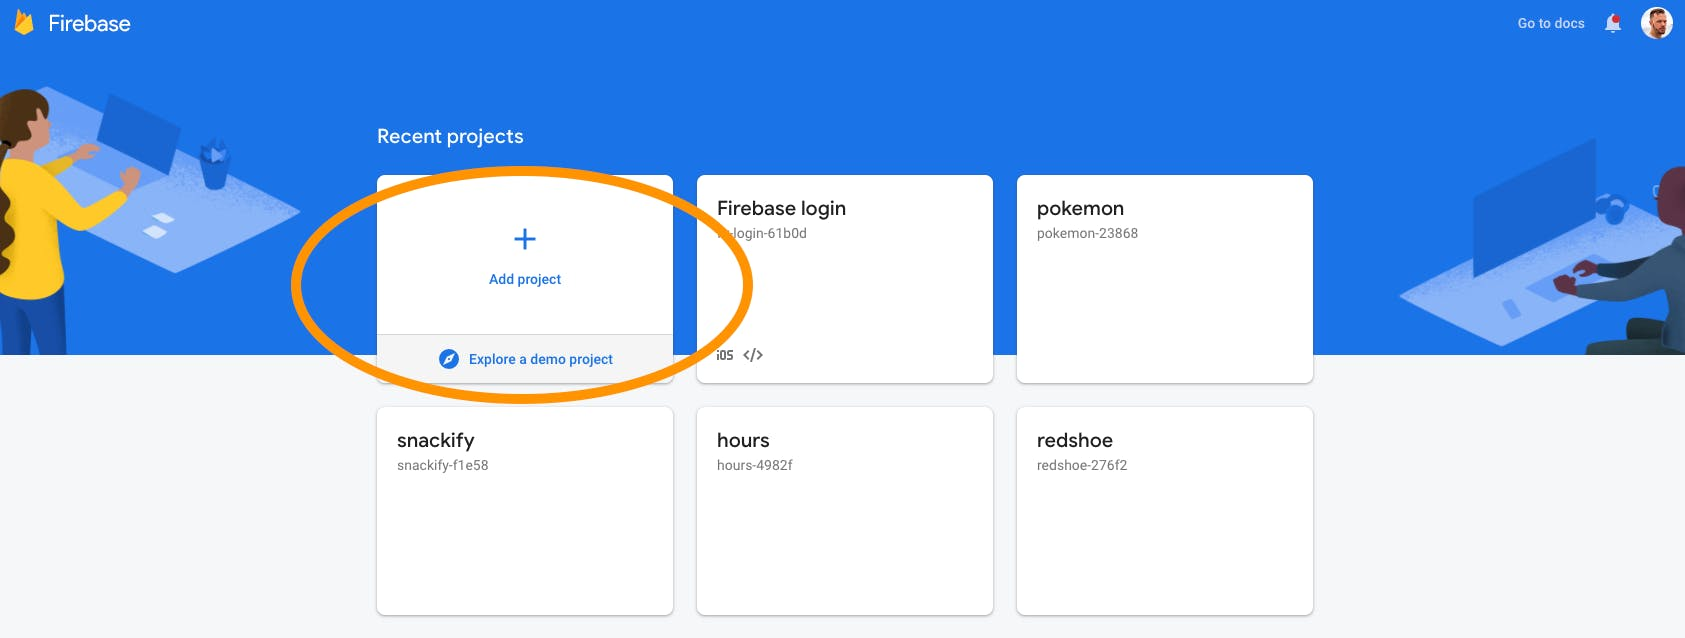 Adding a new project in Firebase